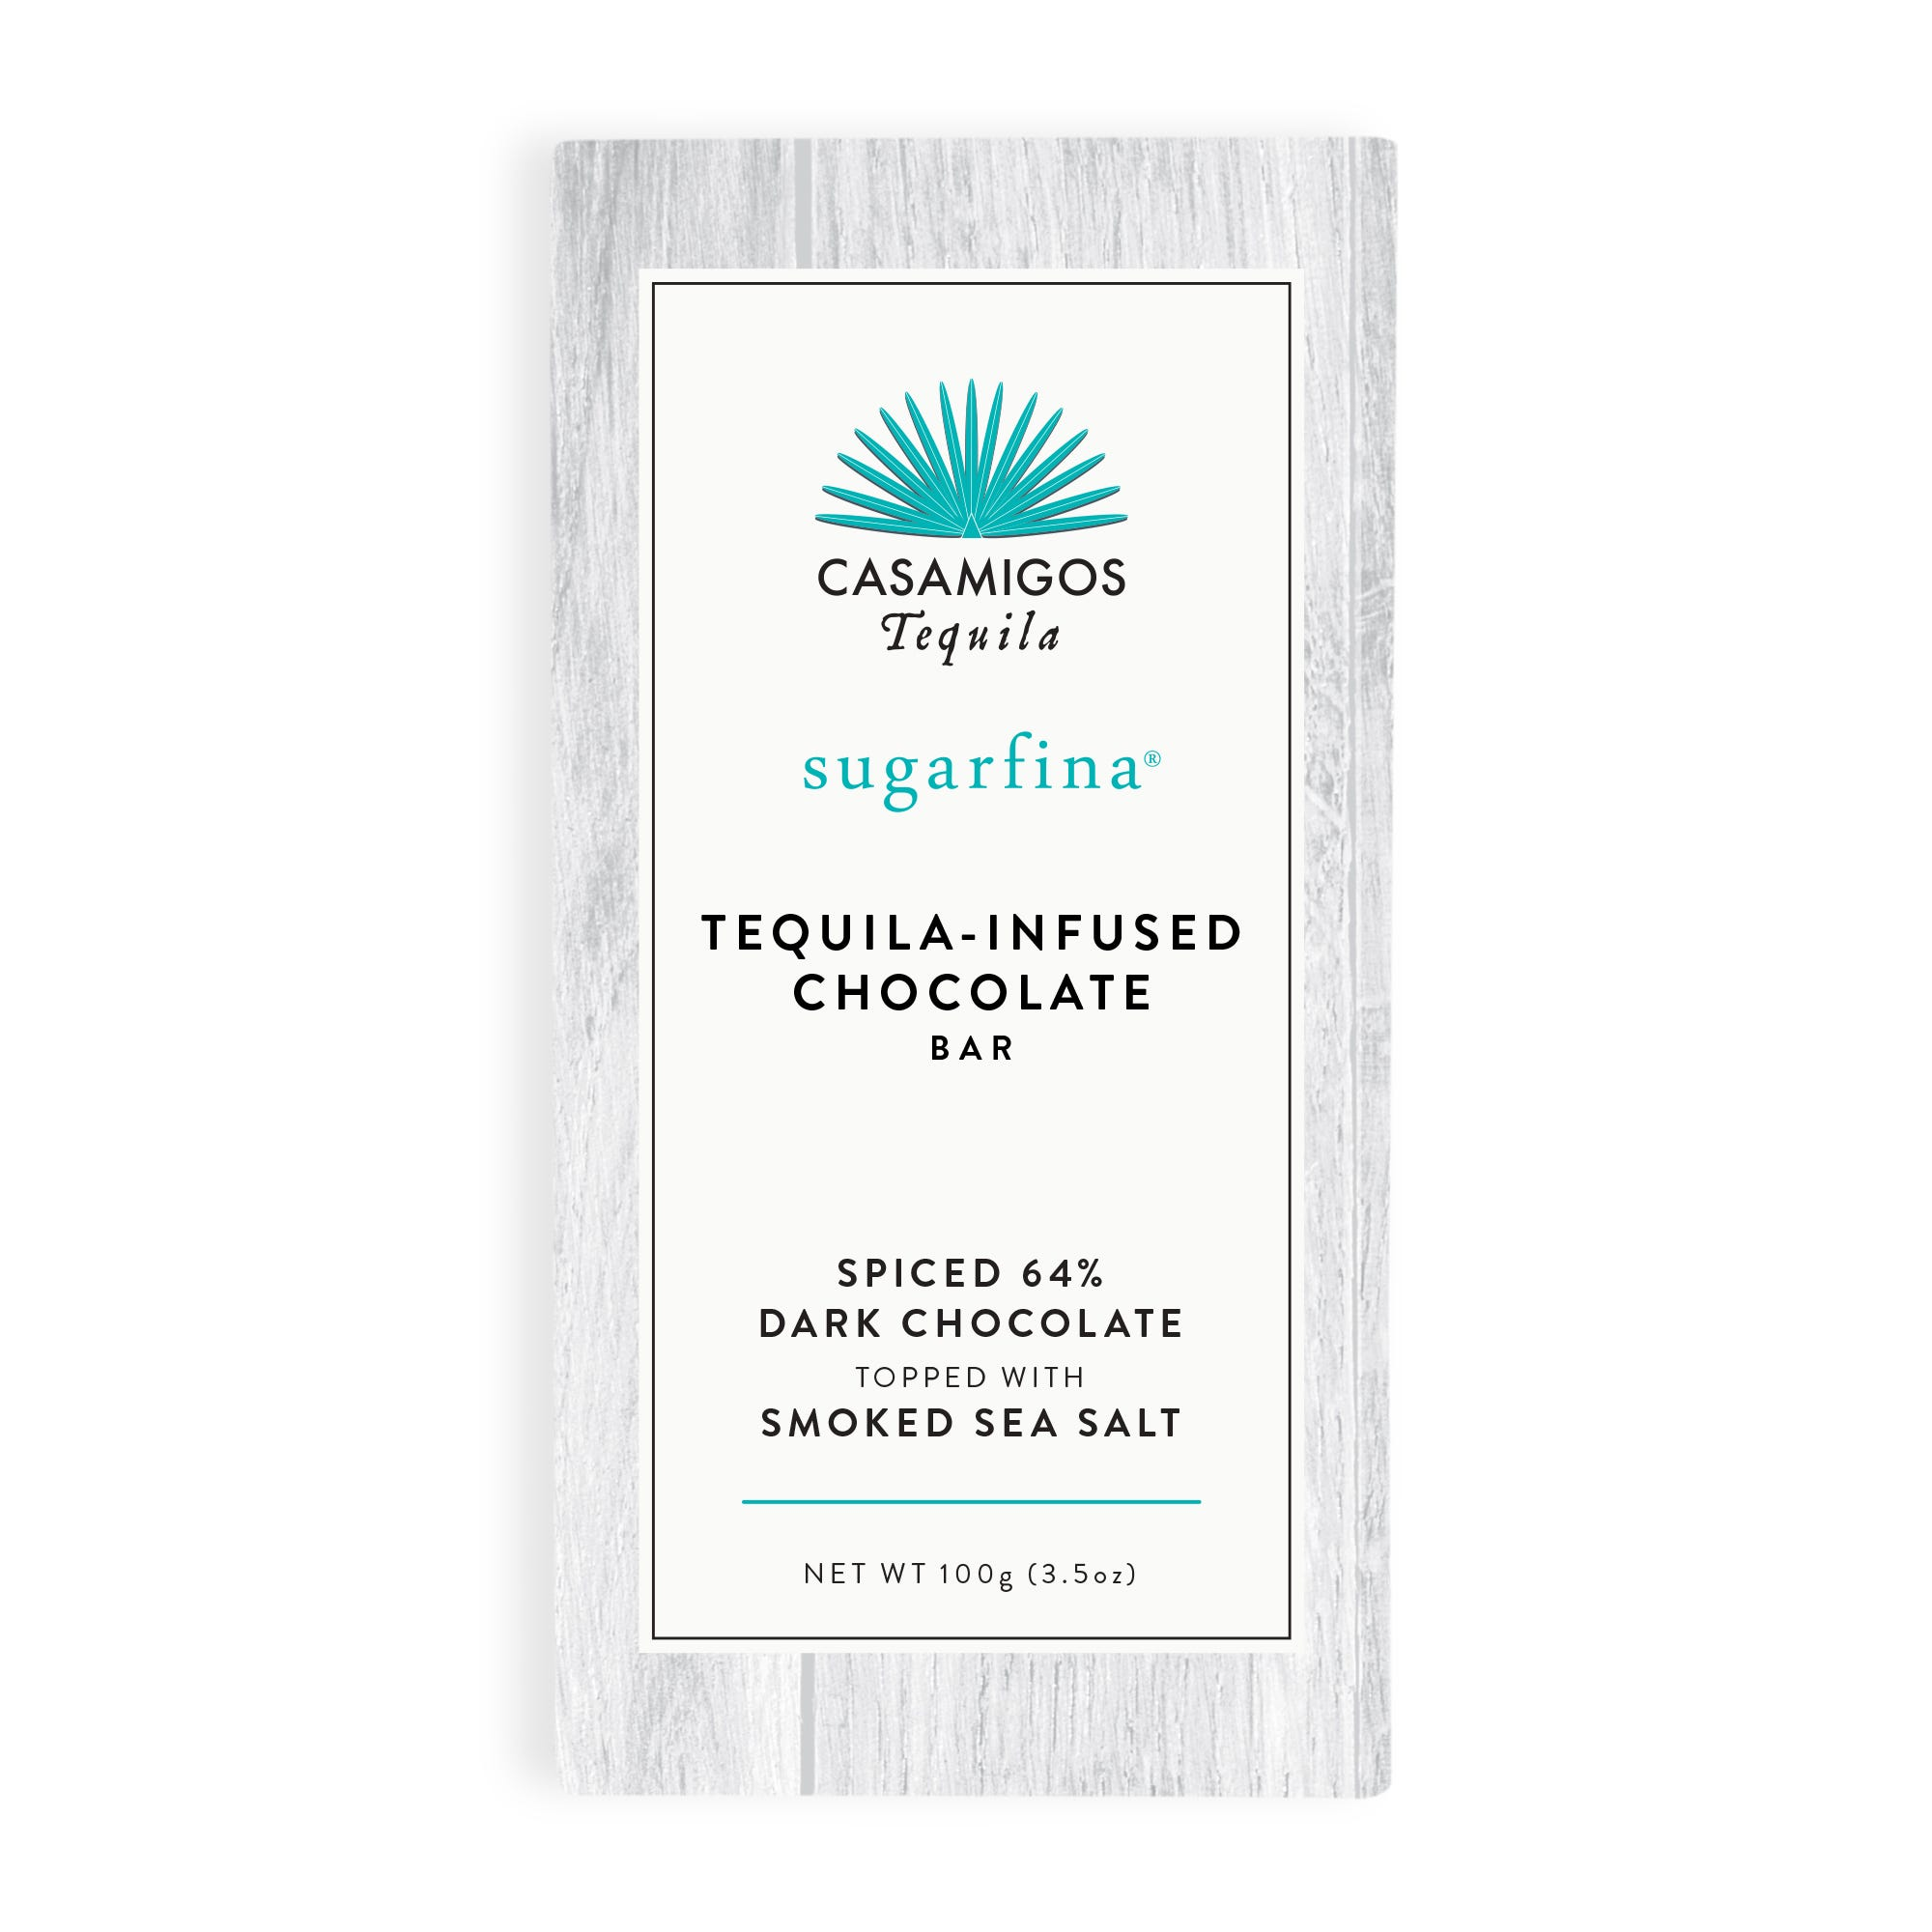 Casamigos Tequila-Infused Chocolate Bar